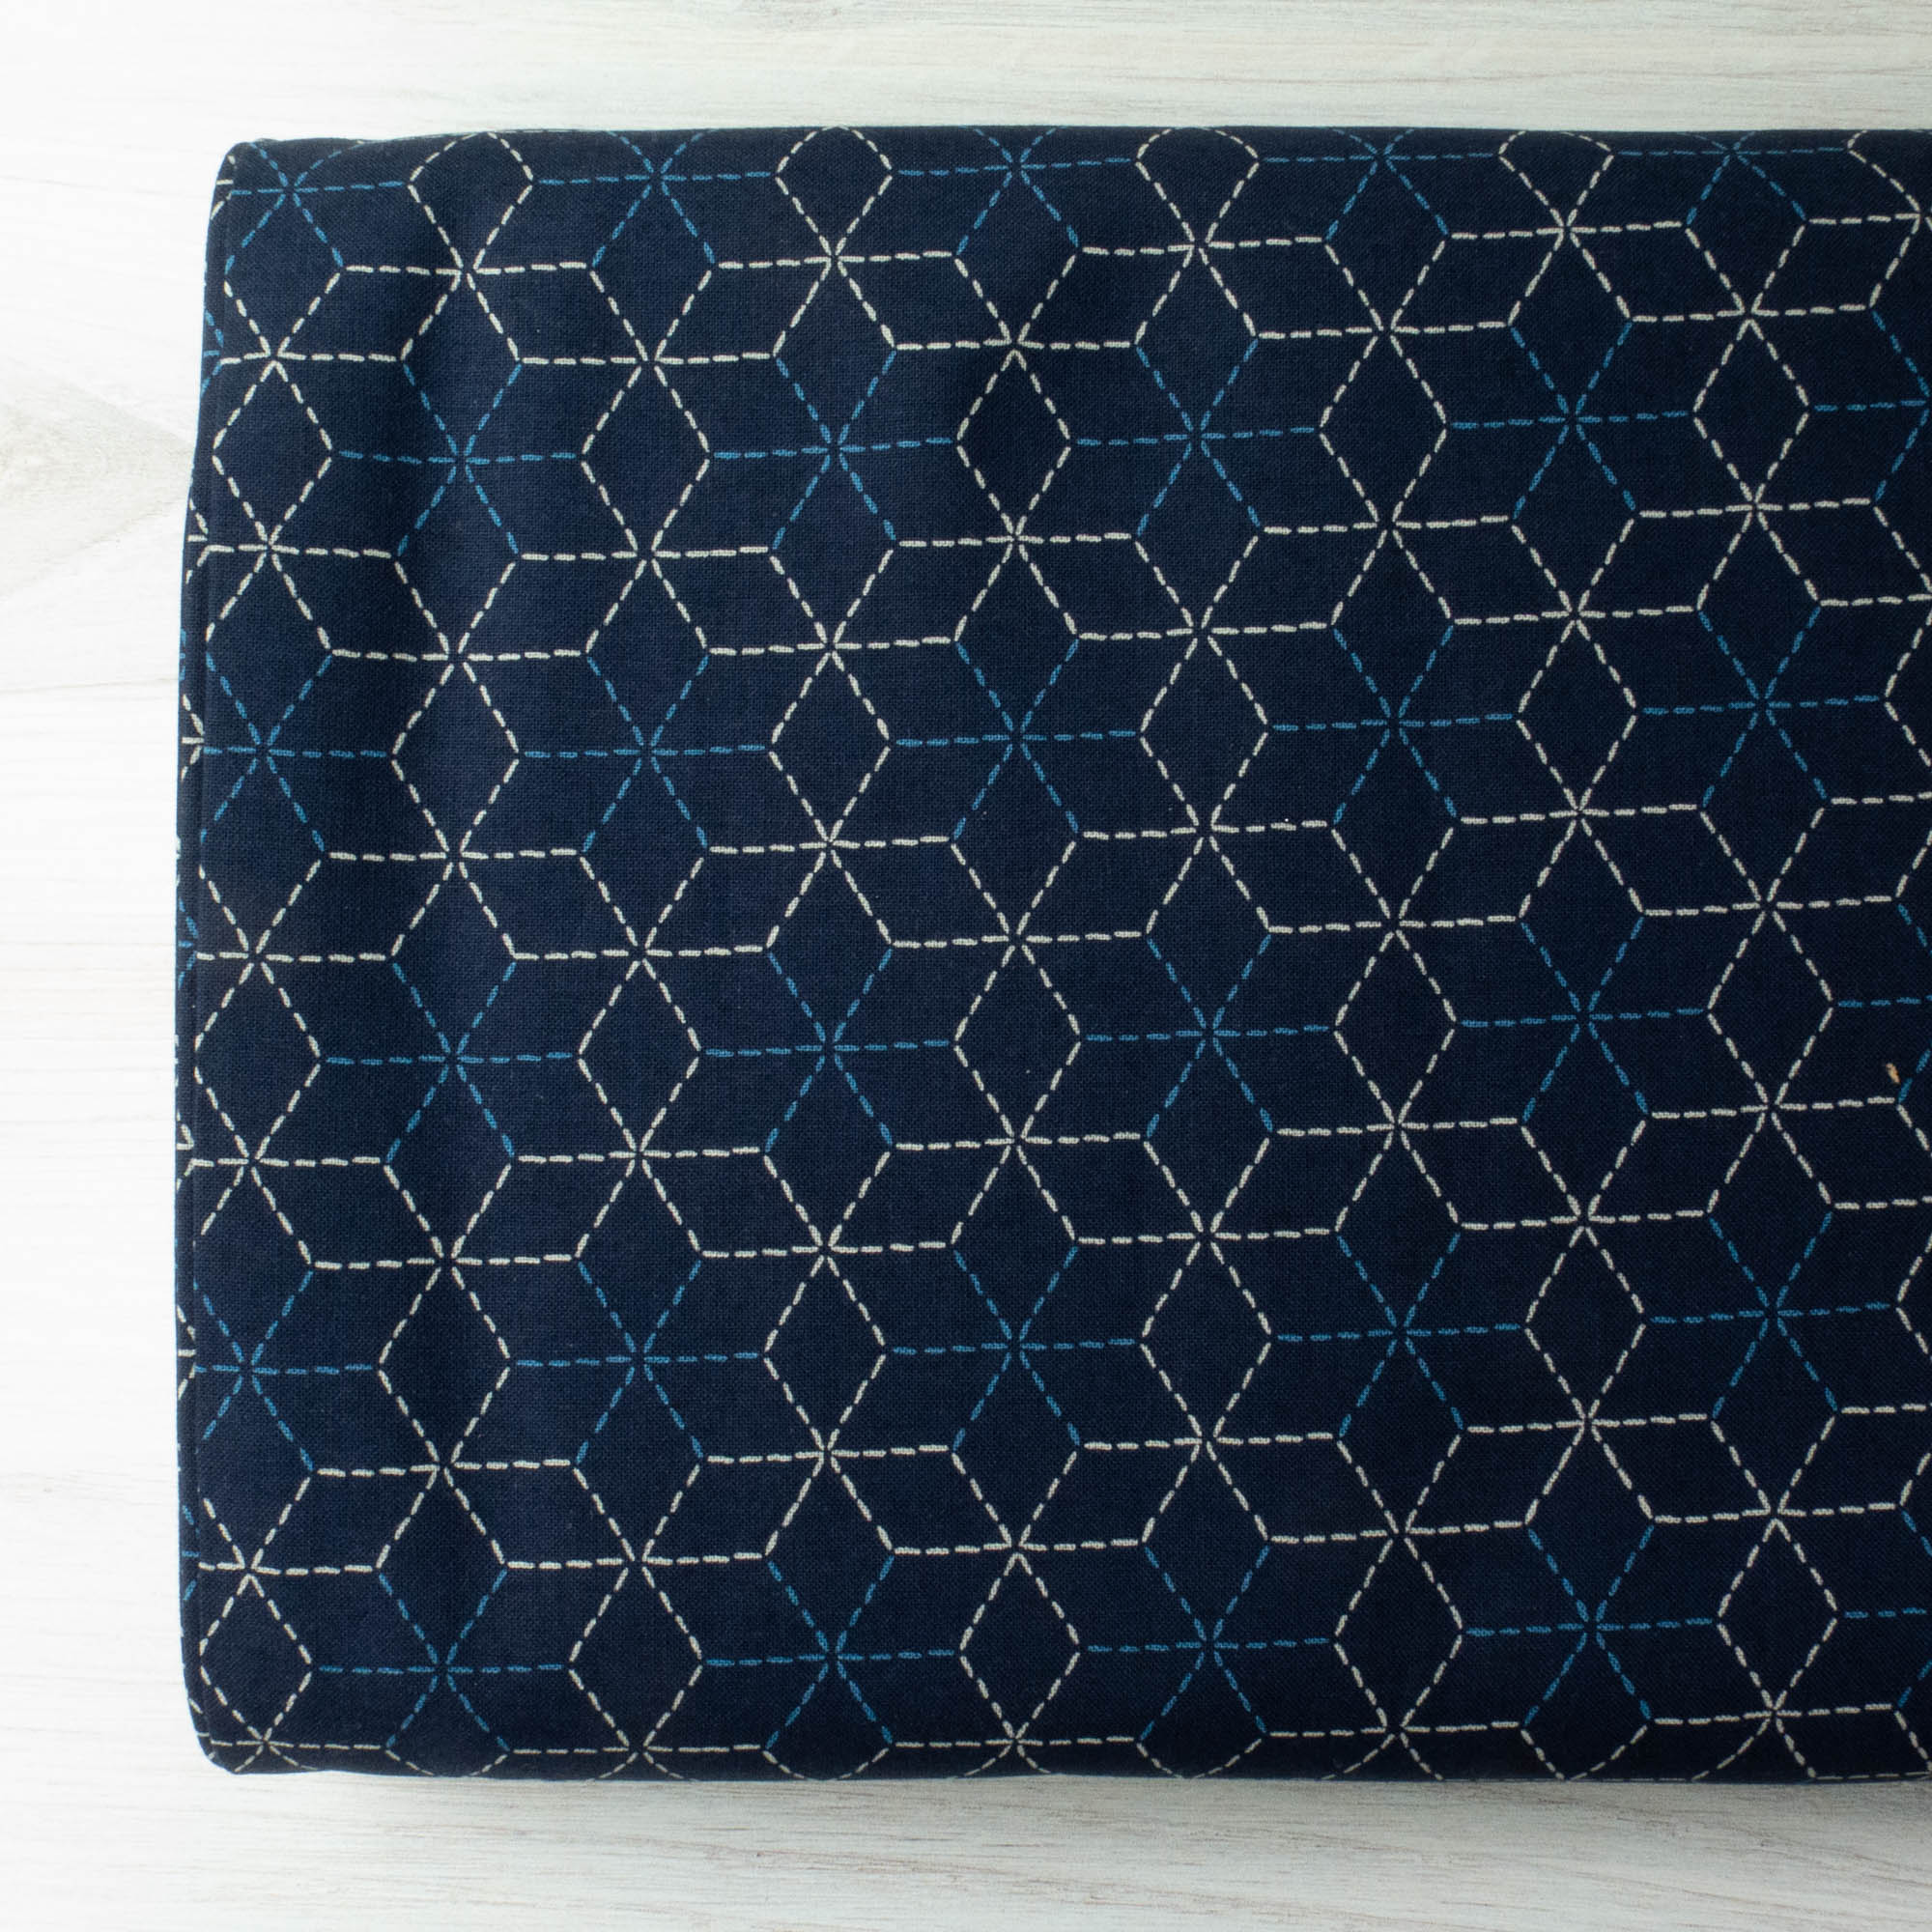 Sevenberry Kasuri : Navy and White Sashiko Fabric - Snuggly Monkey